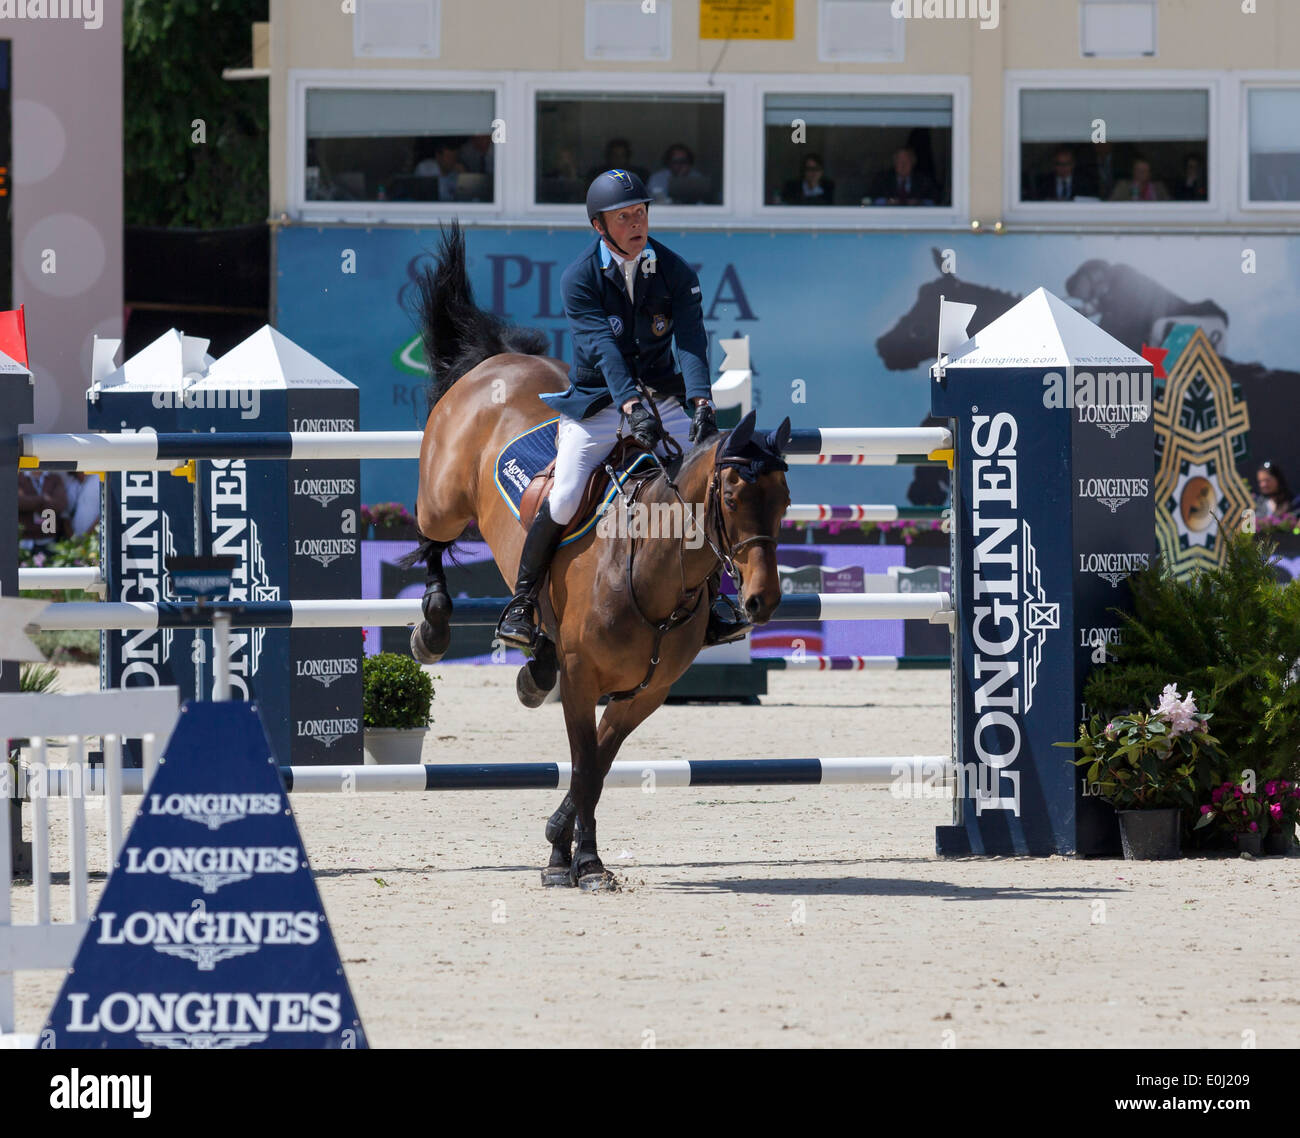 Jens Fredricson of Sweden on Lunatic at the Piazza di Siena show jumping event in Rome, Italy in May 2013 5/24/13 - Stock Image